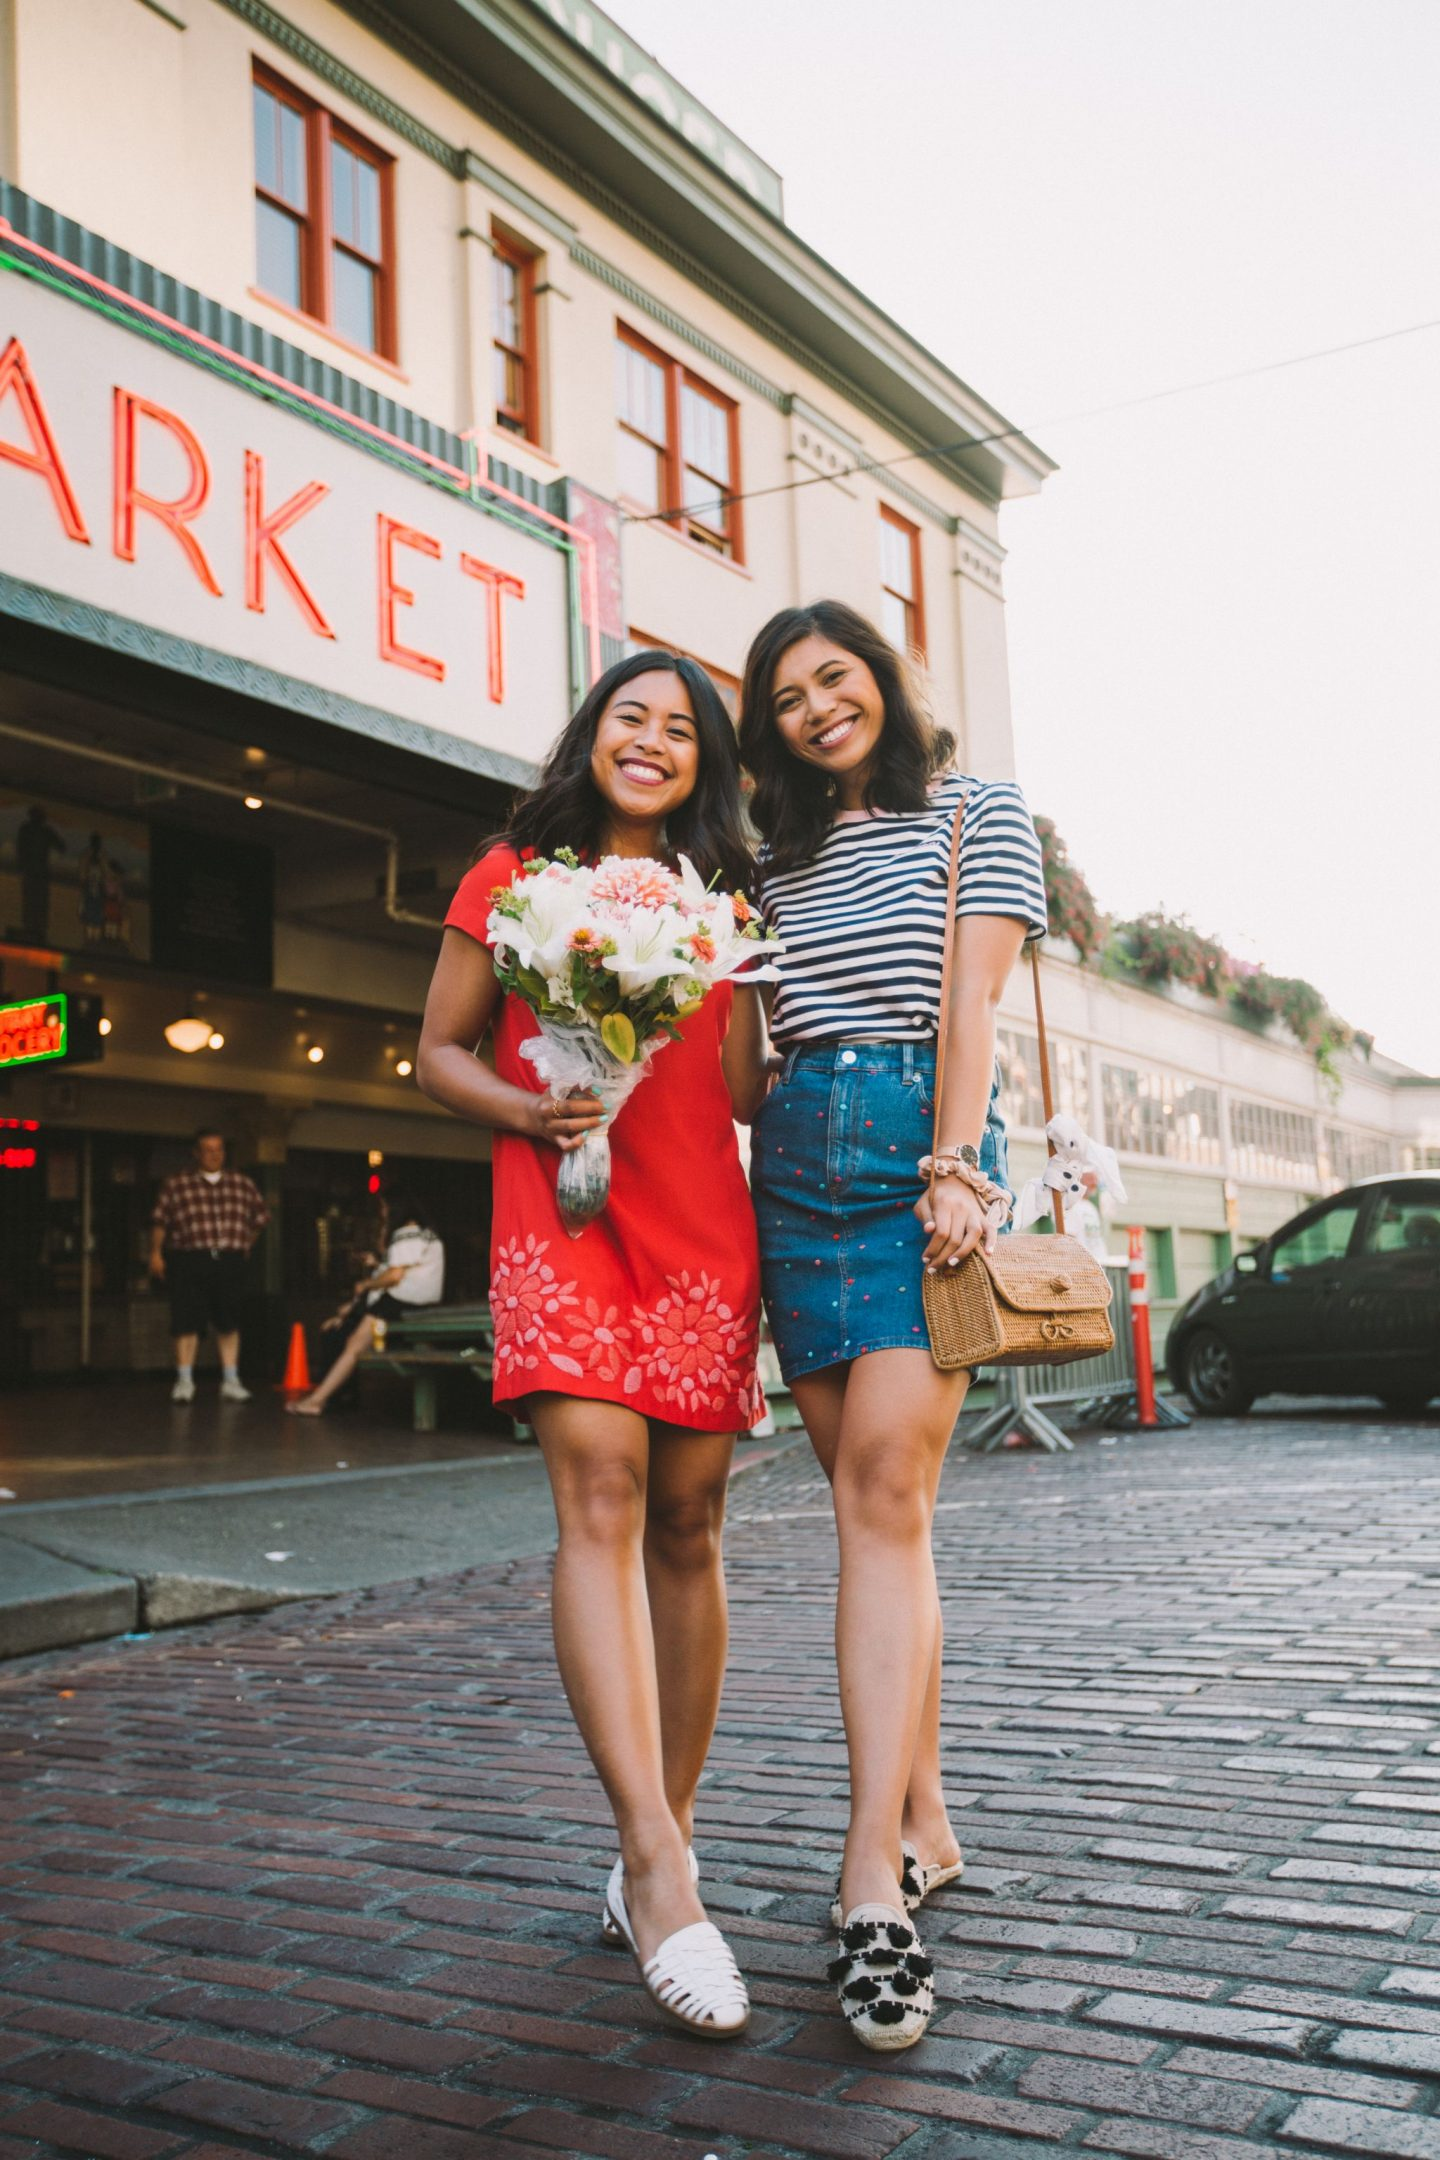 10 Things to Do at Pike Place Market Your First Time